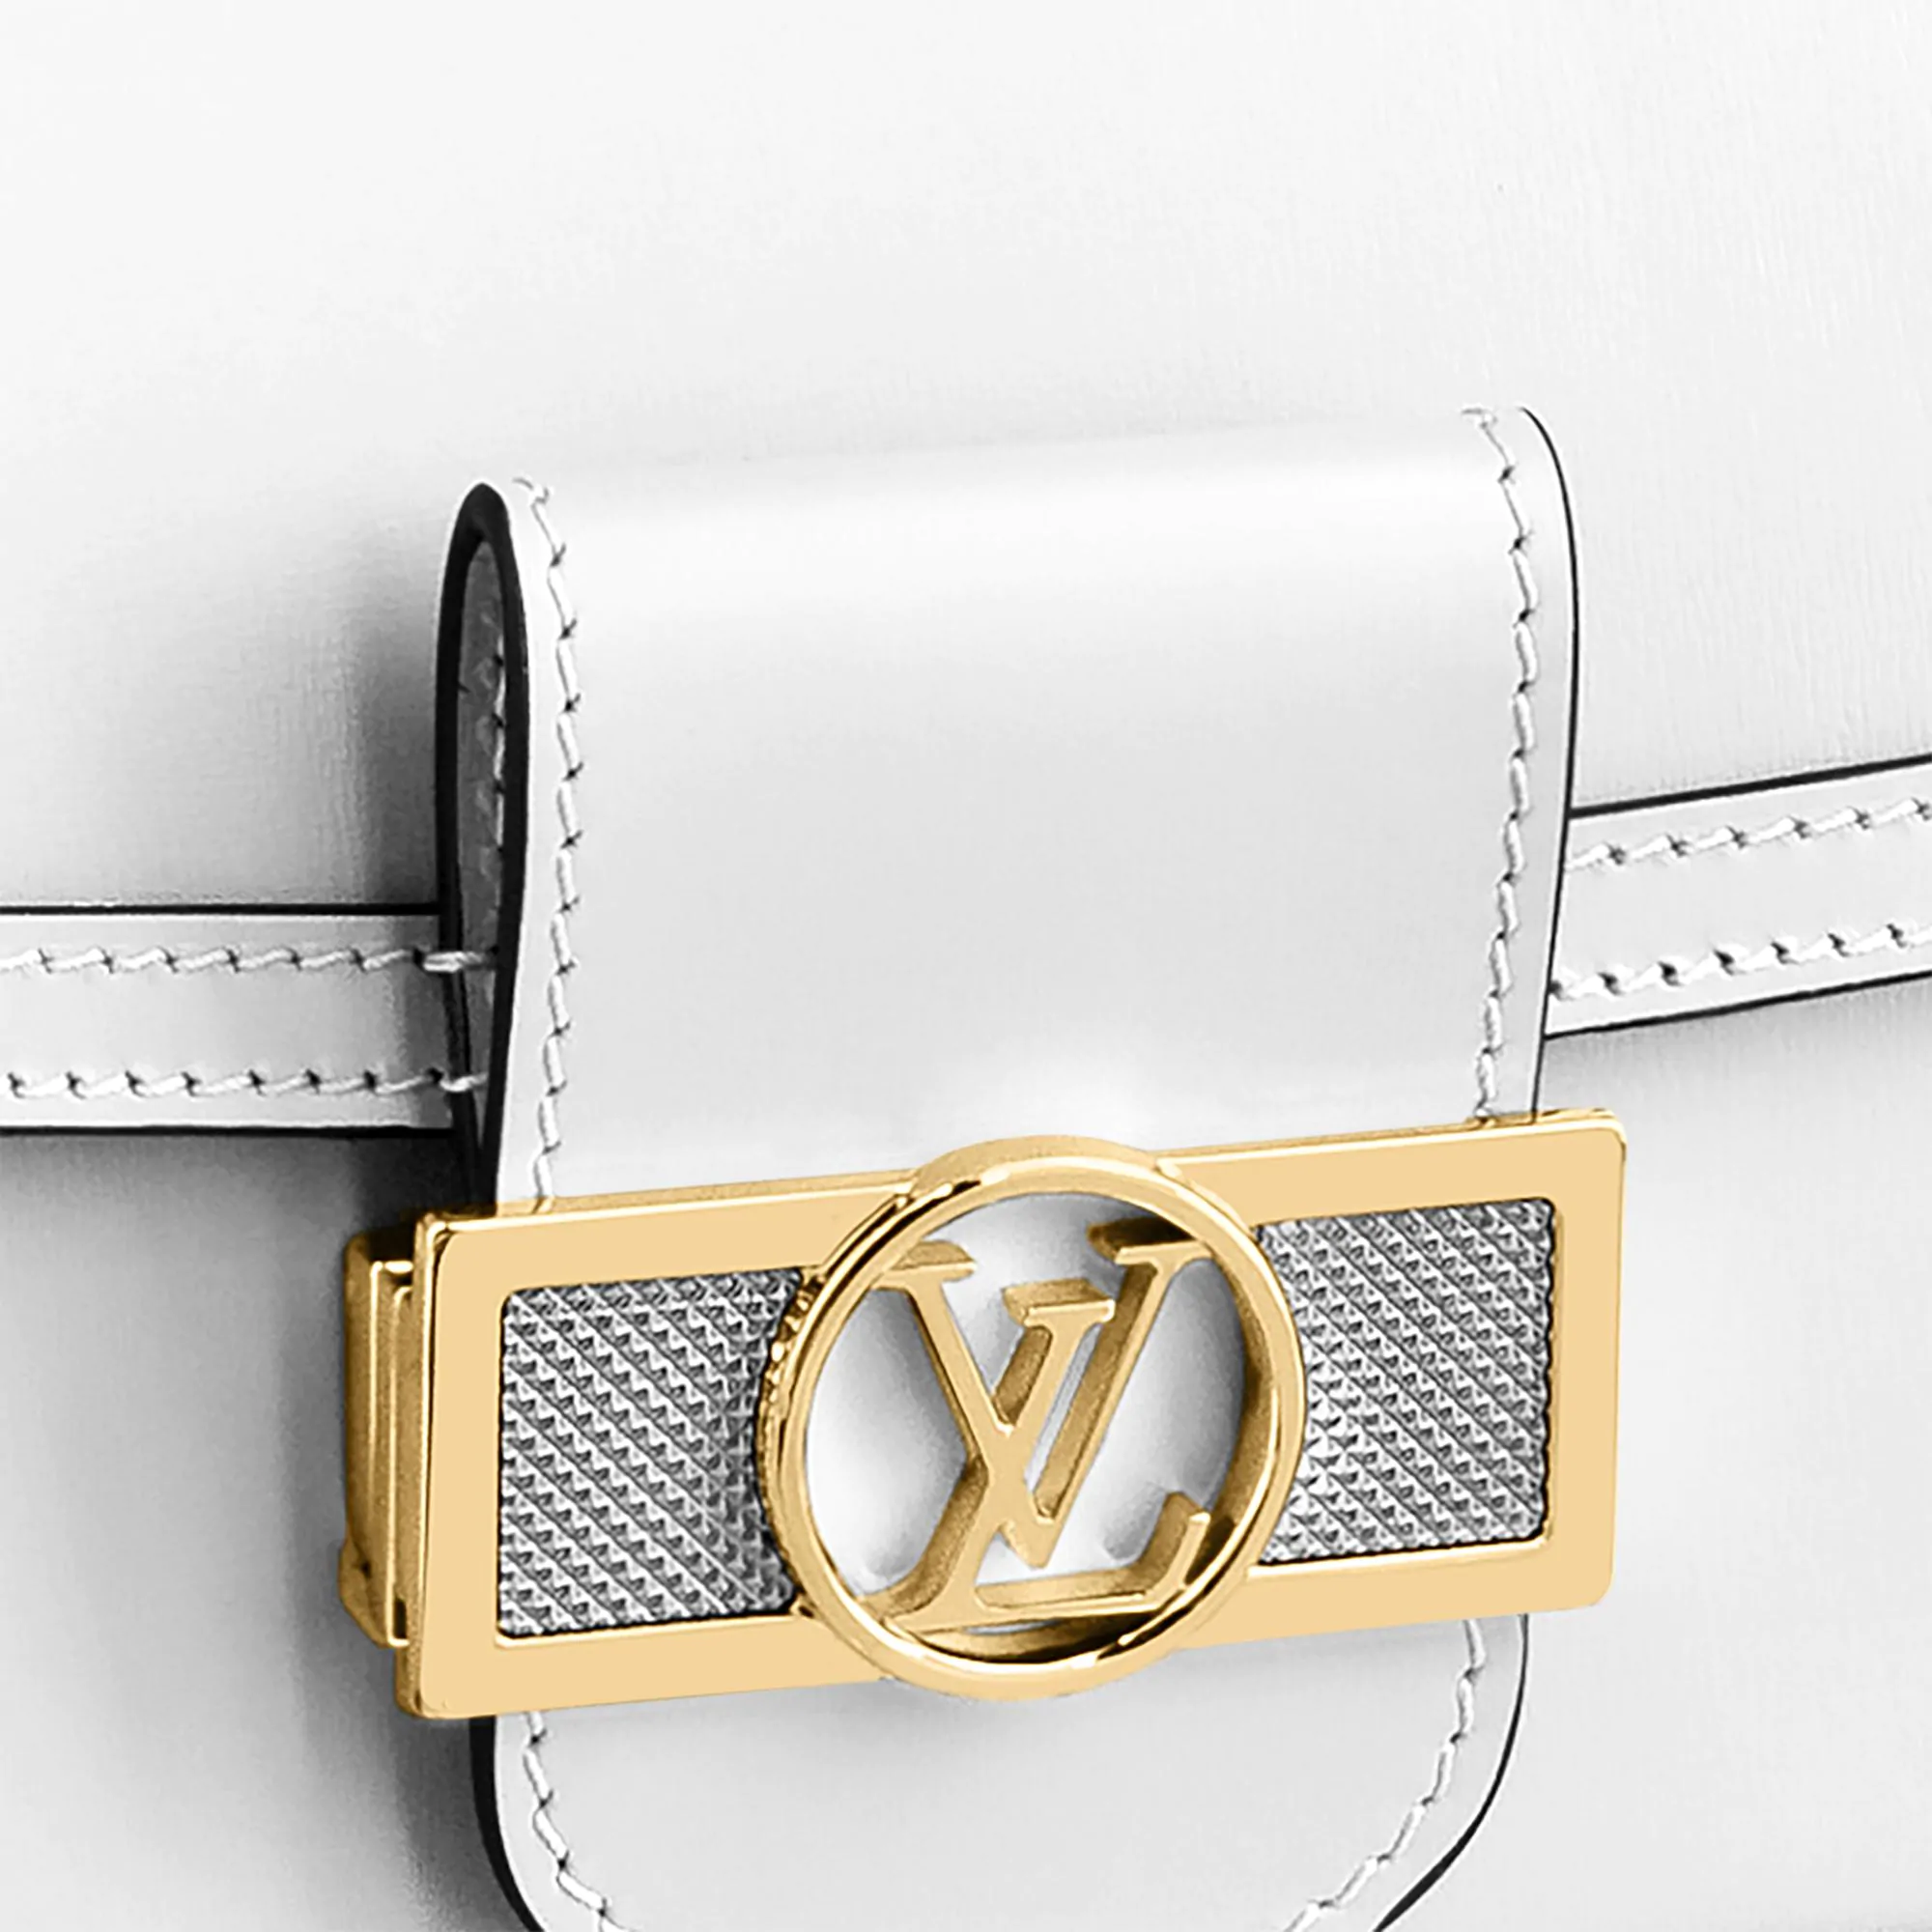 유럽직배송 루이비통 LOUIS VUITTON Mini Dauphine M55836